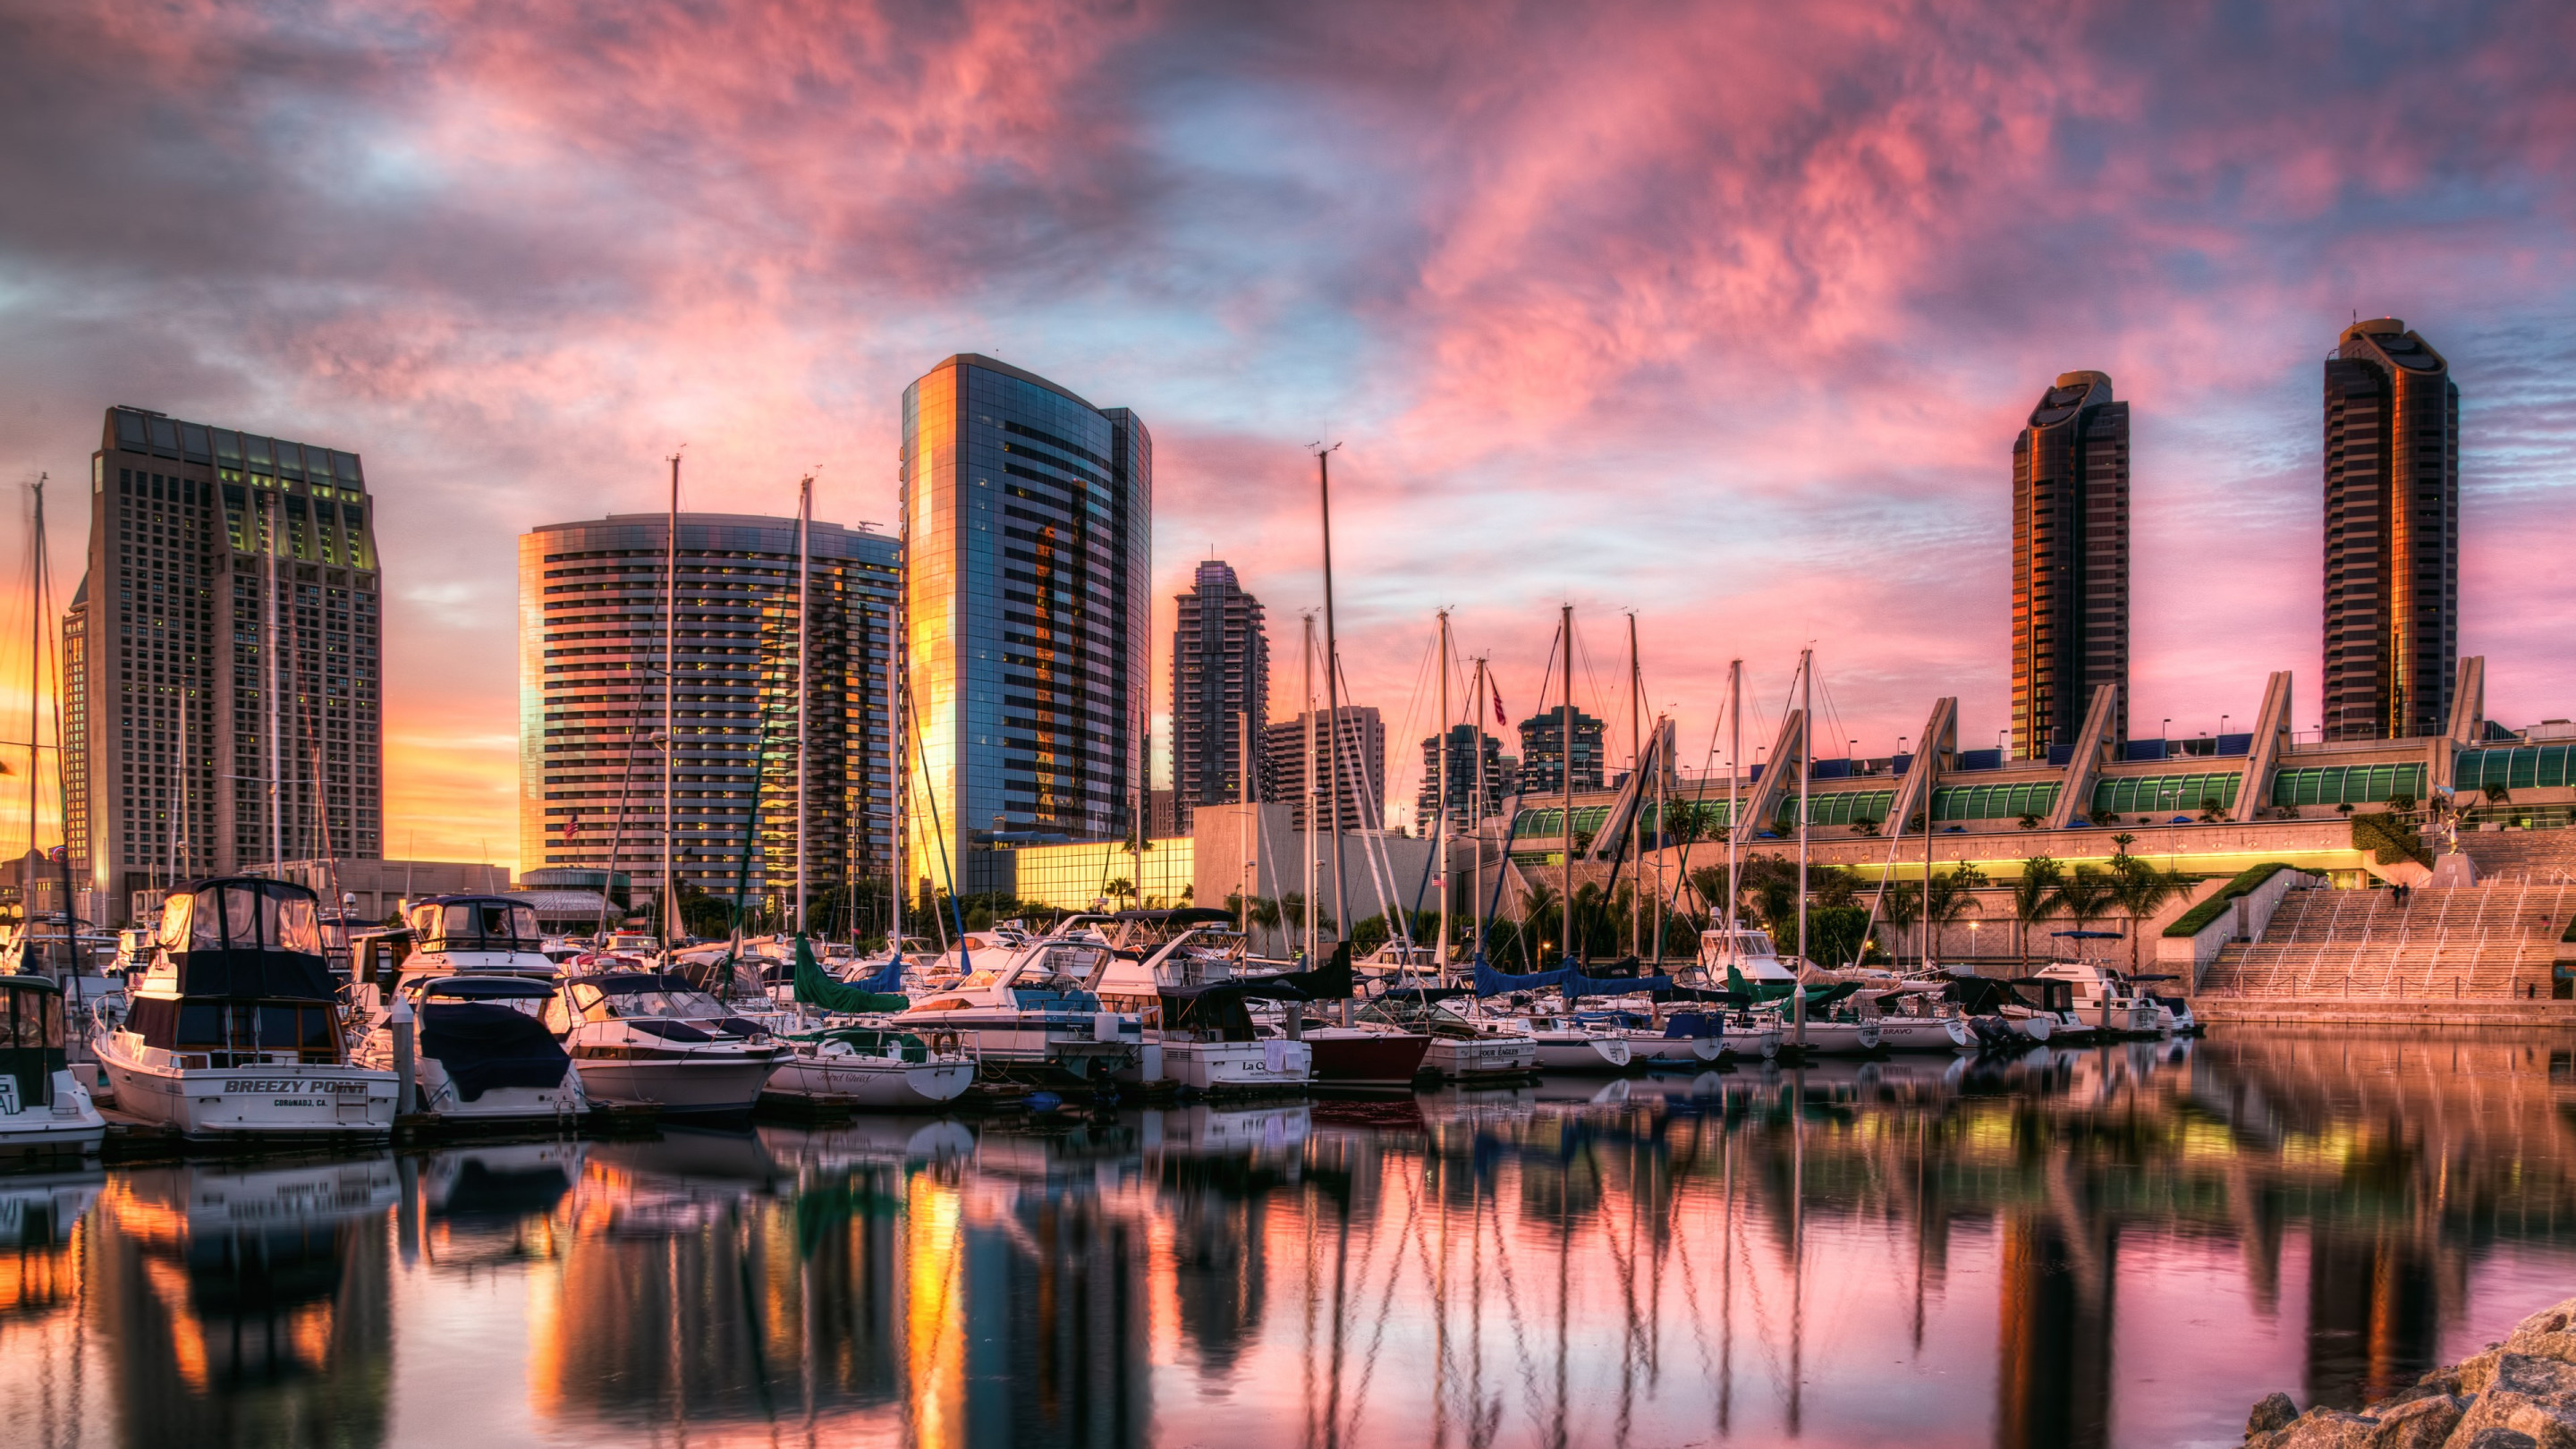 Sunset in San Diego harbor wallpaper 2880x1620